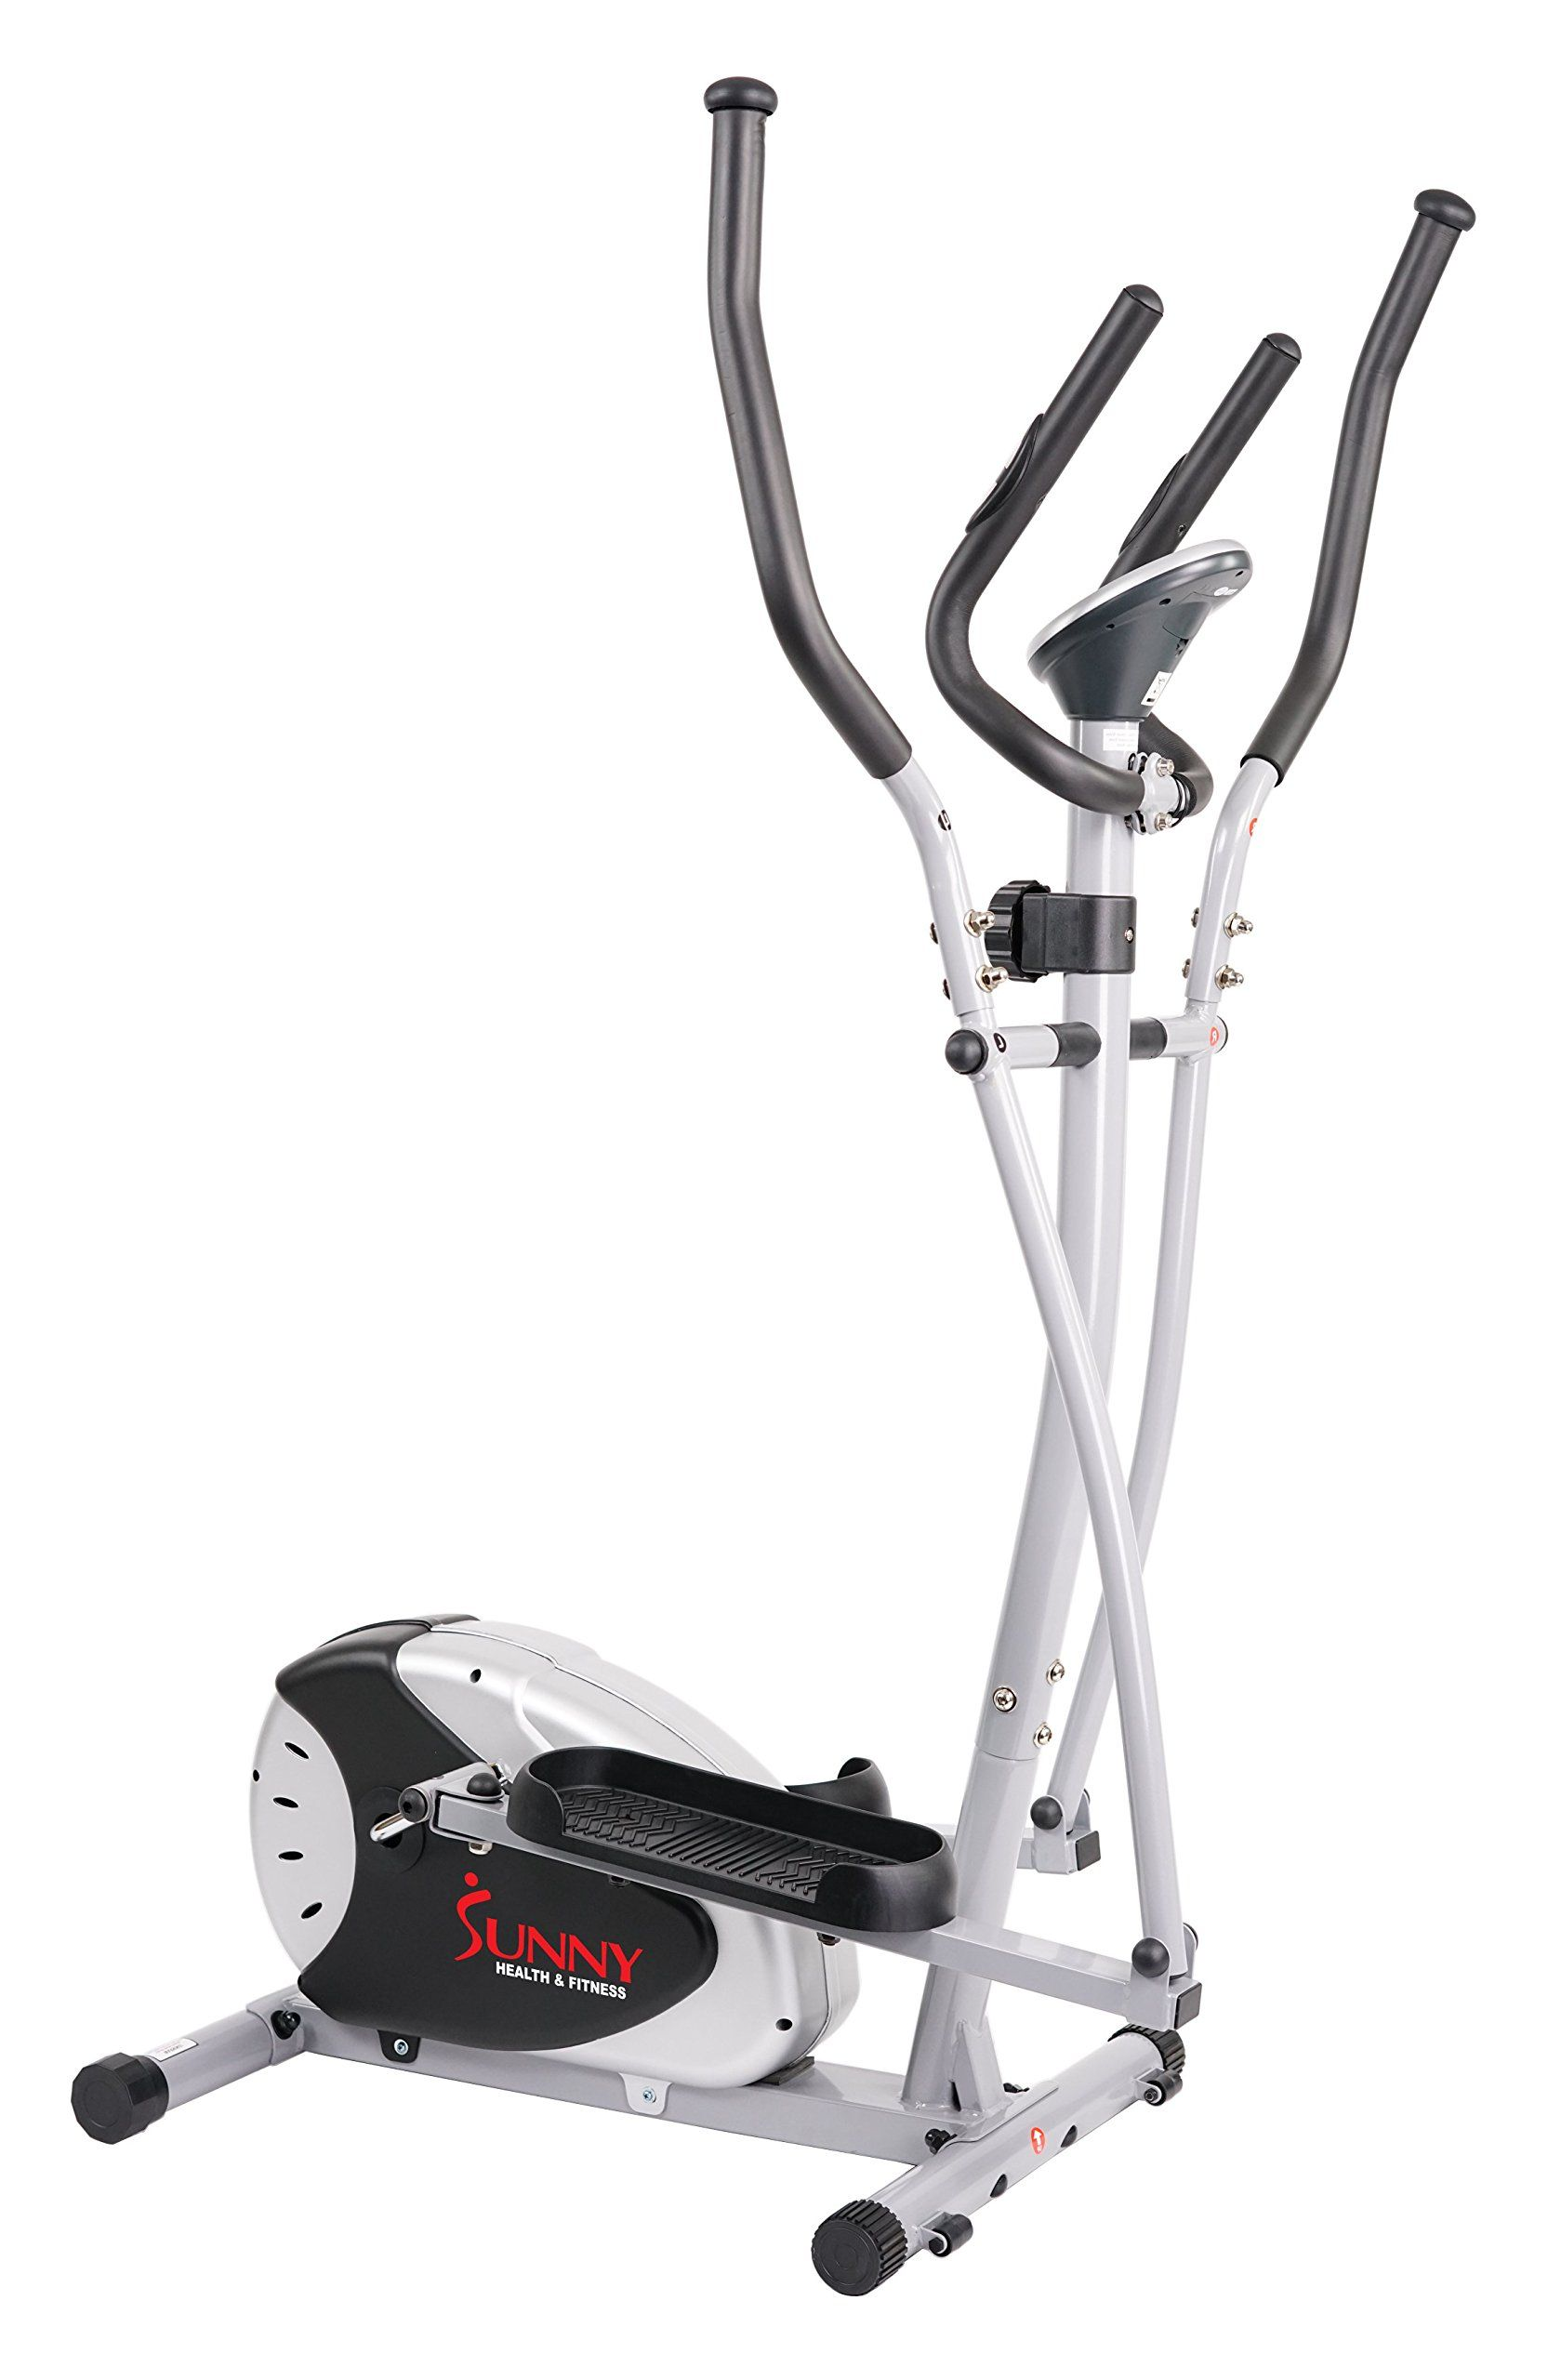 Elliptical trainer with hand pulse monitoring system by